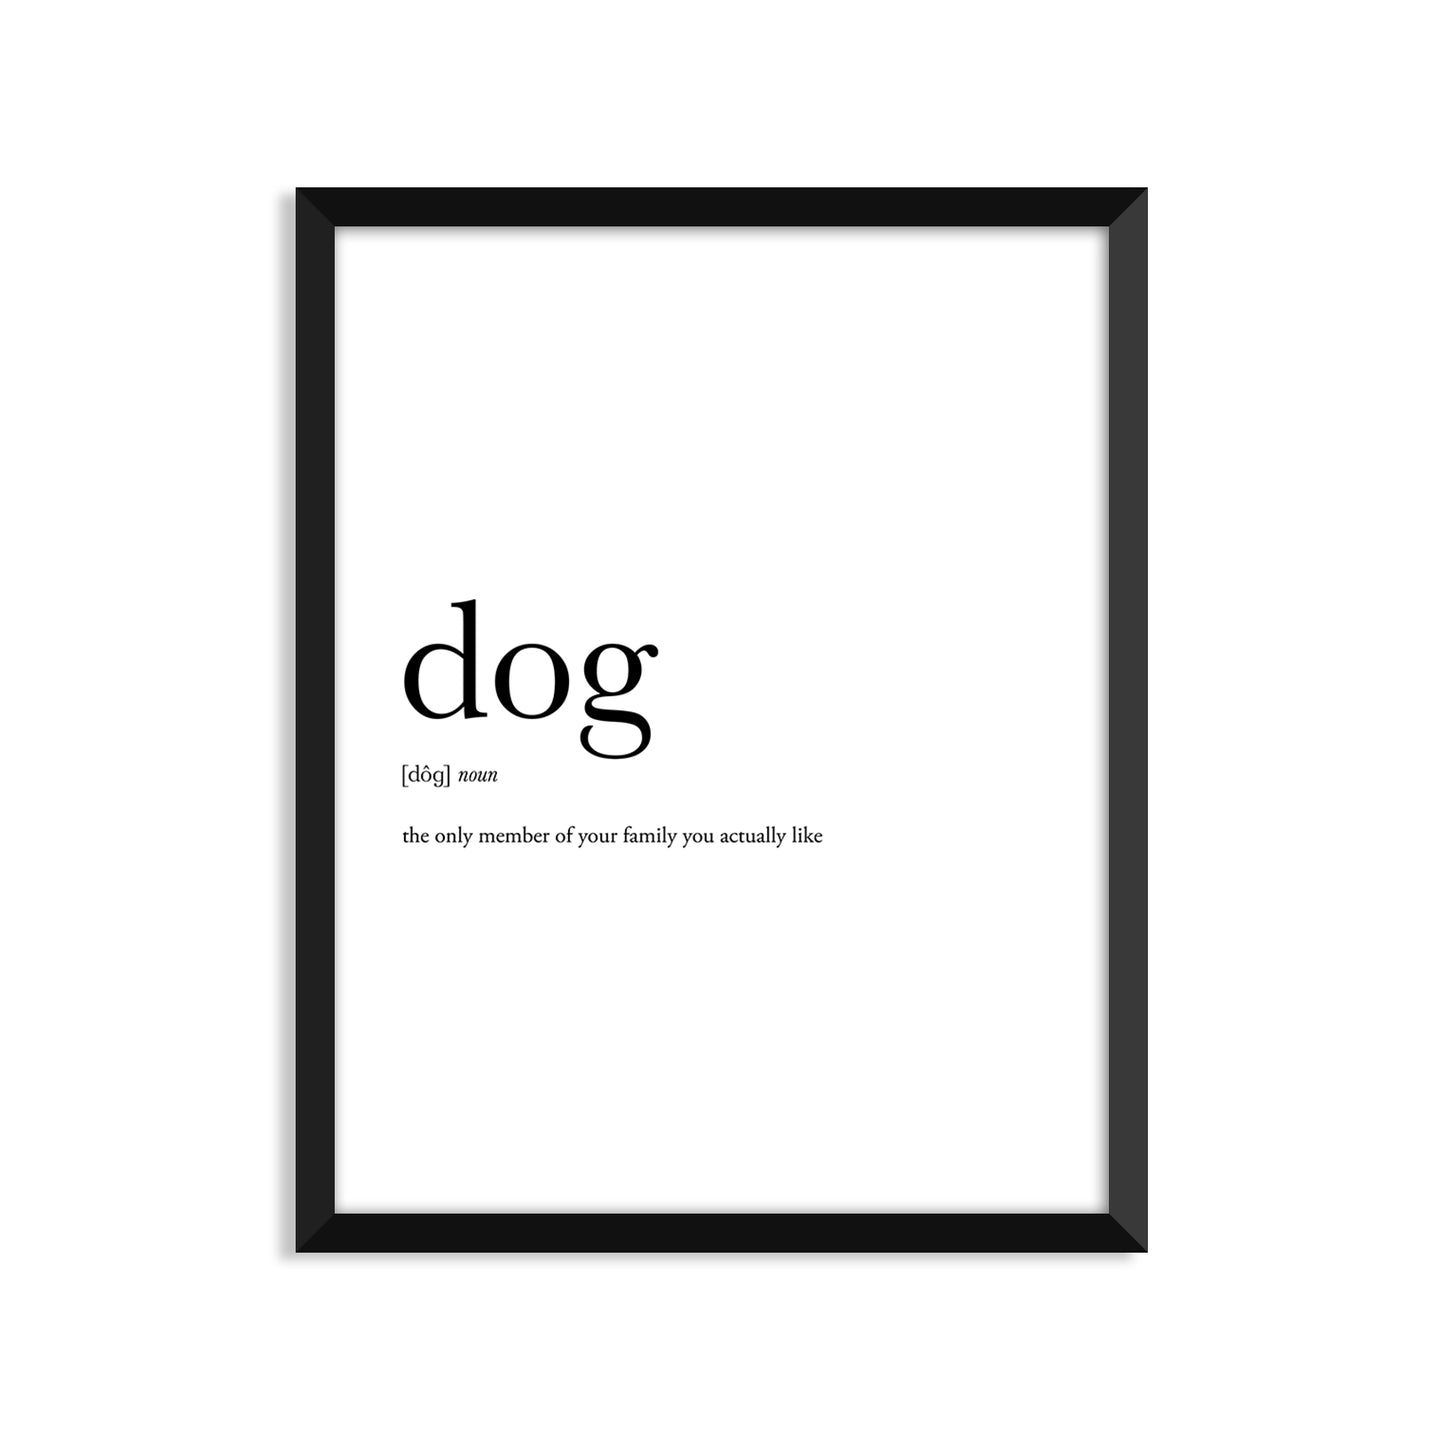 Dog Definition - Unframed Art Print Or Greeting Card